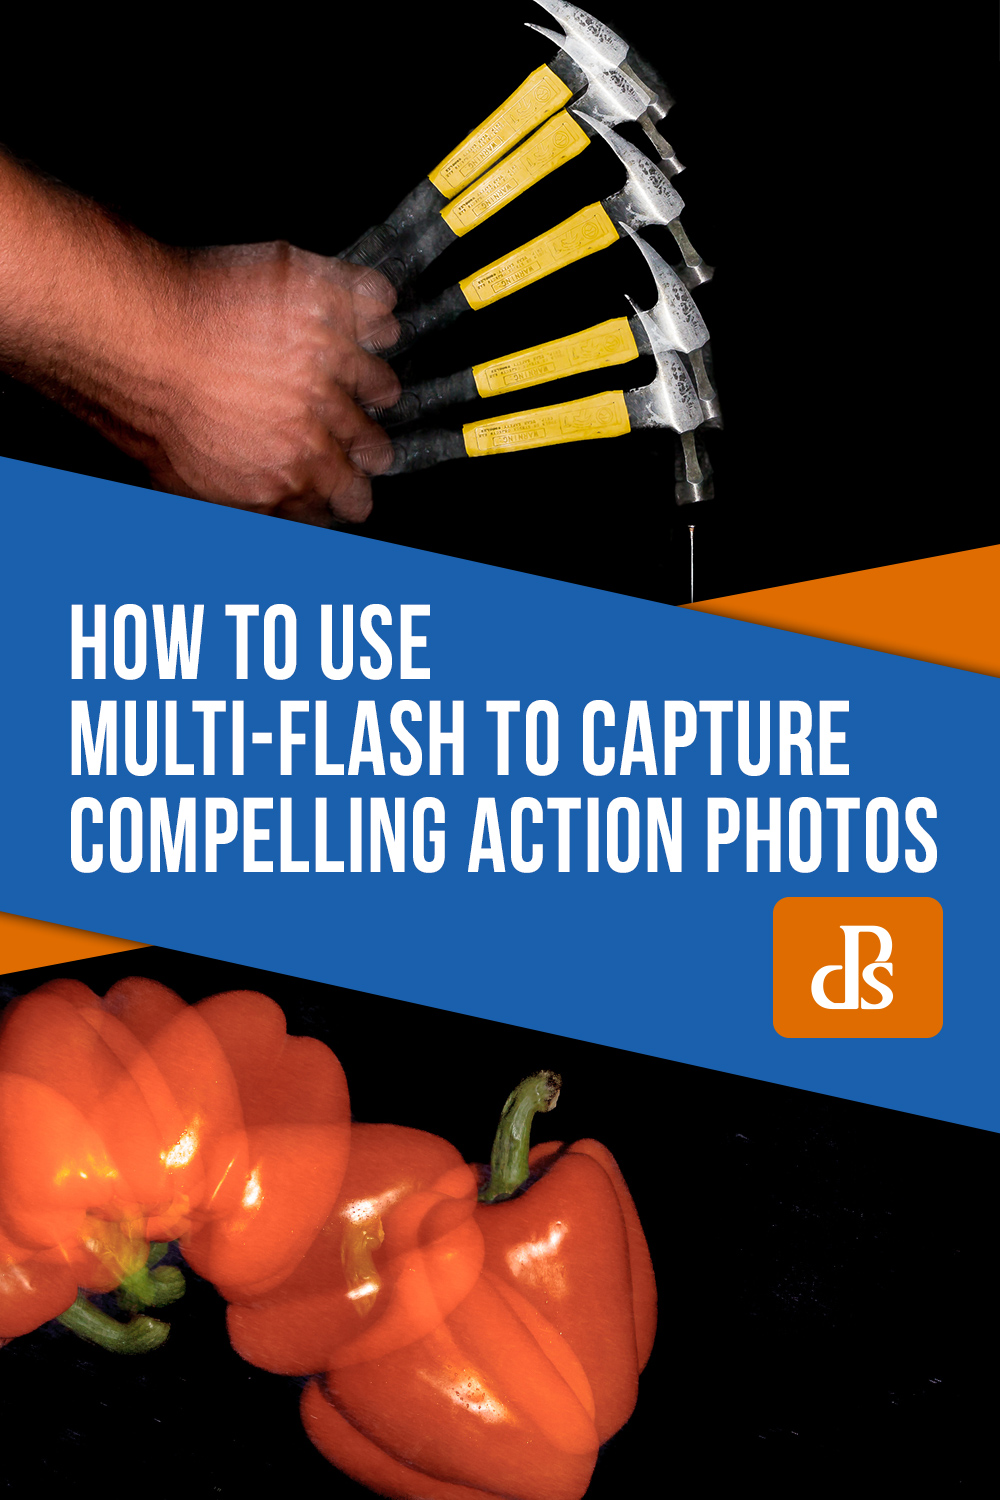 How-to-Use-Multi-flash-to-Capture-Compelling-Action-Photos